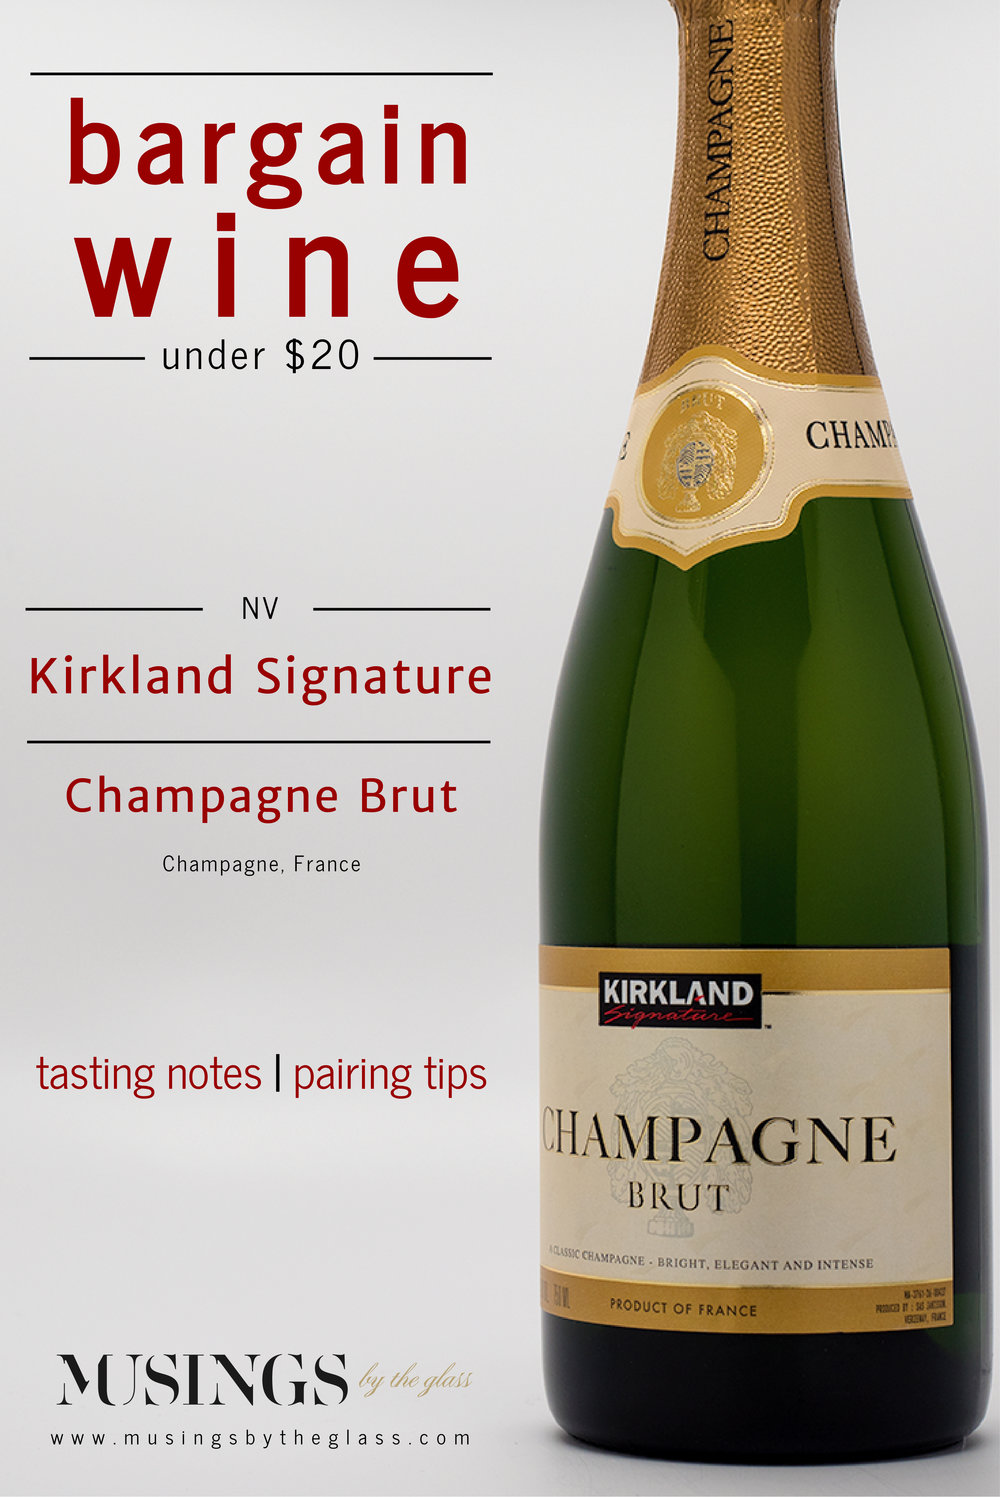 Musings by the Glass - Bargain Wines - Kirkland Signature Champagne Brut